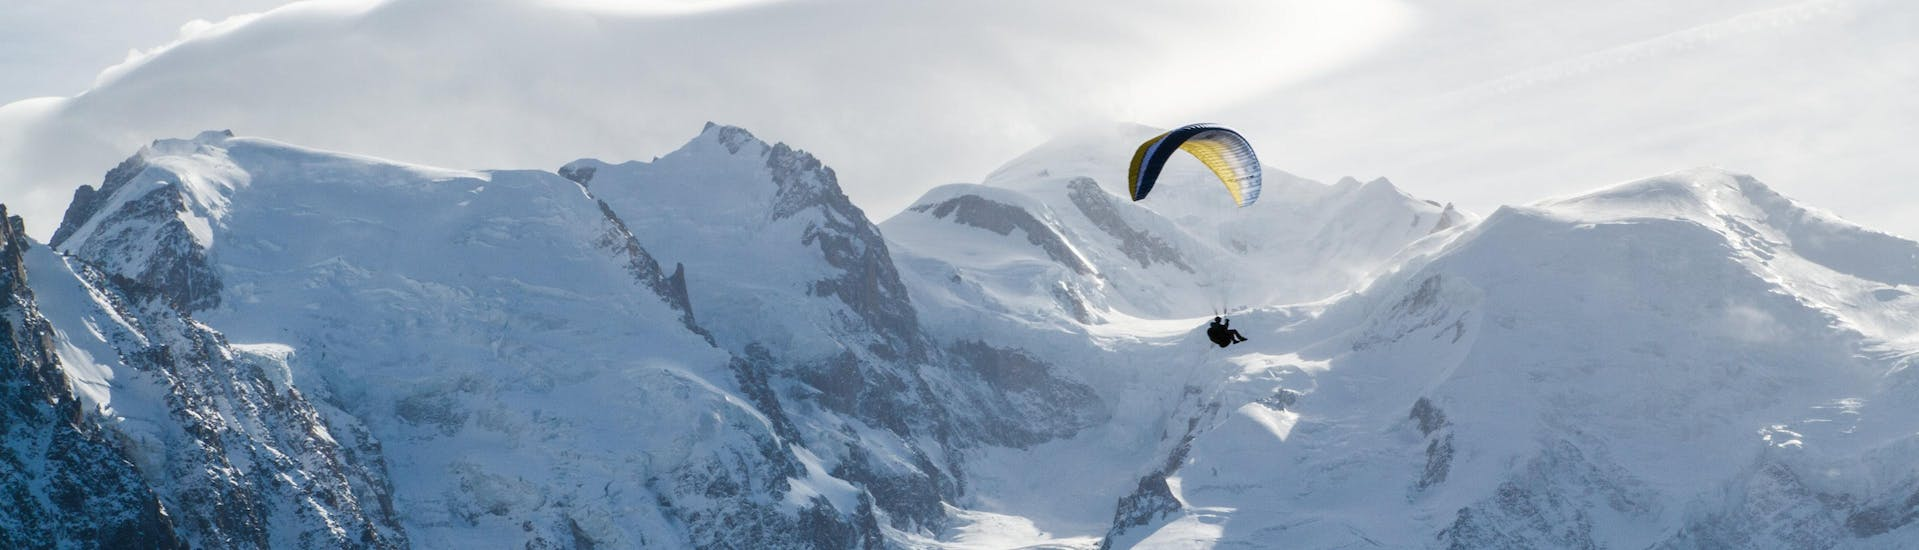 A person is doing a paragliding flight in the Chamonix valley from Plan Praz with the snowy mountains in the background.